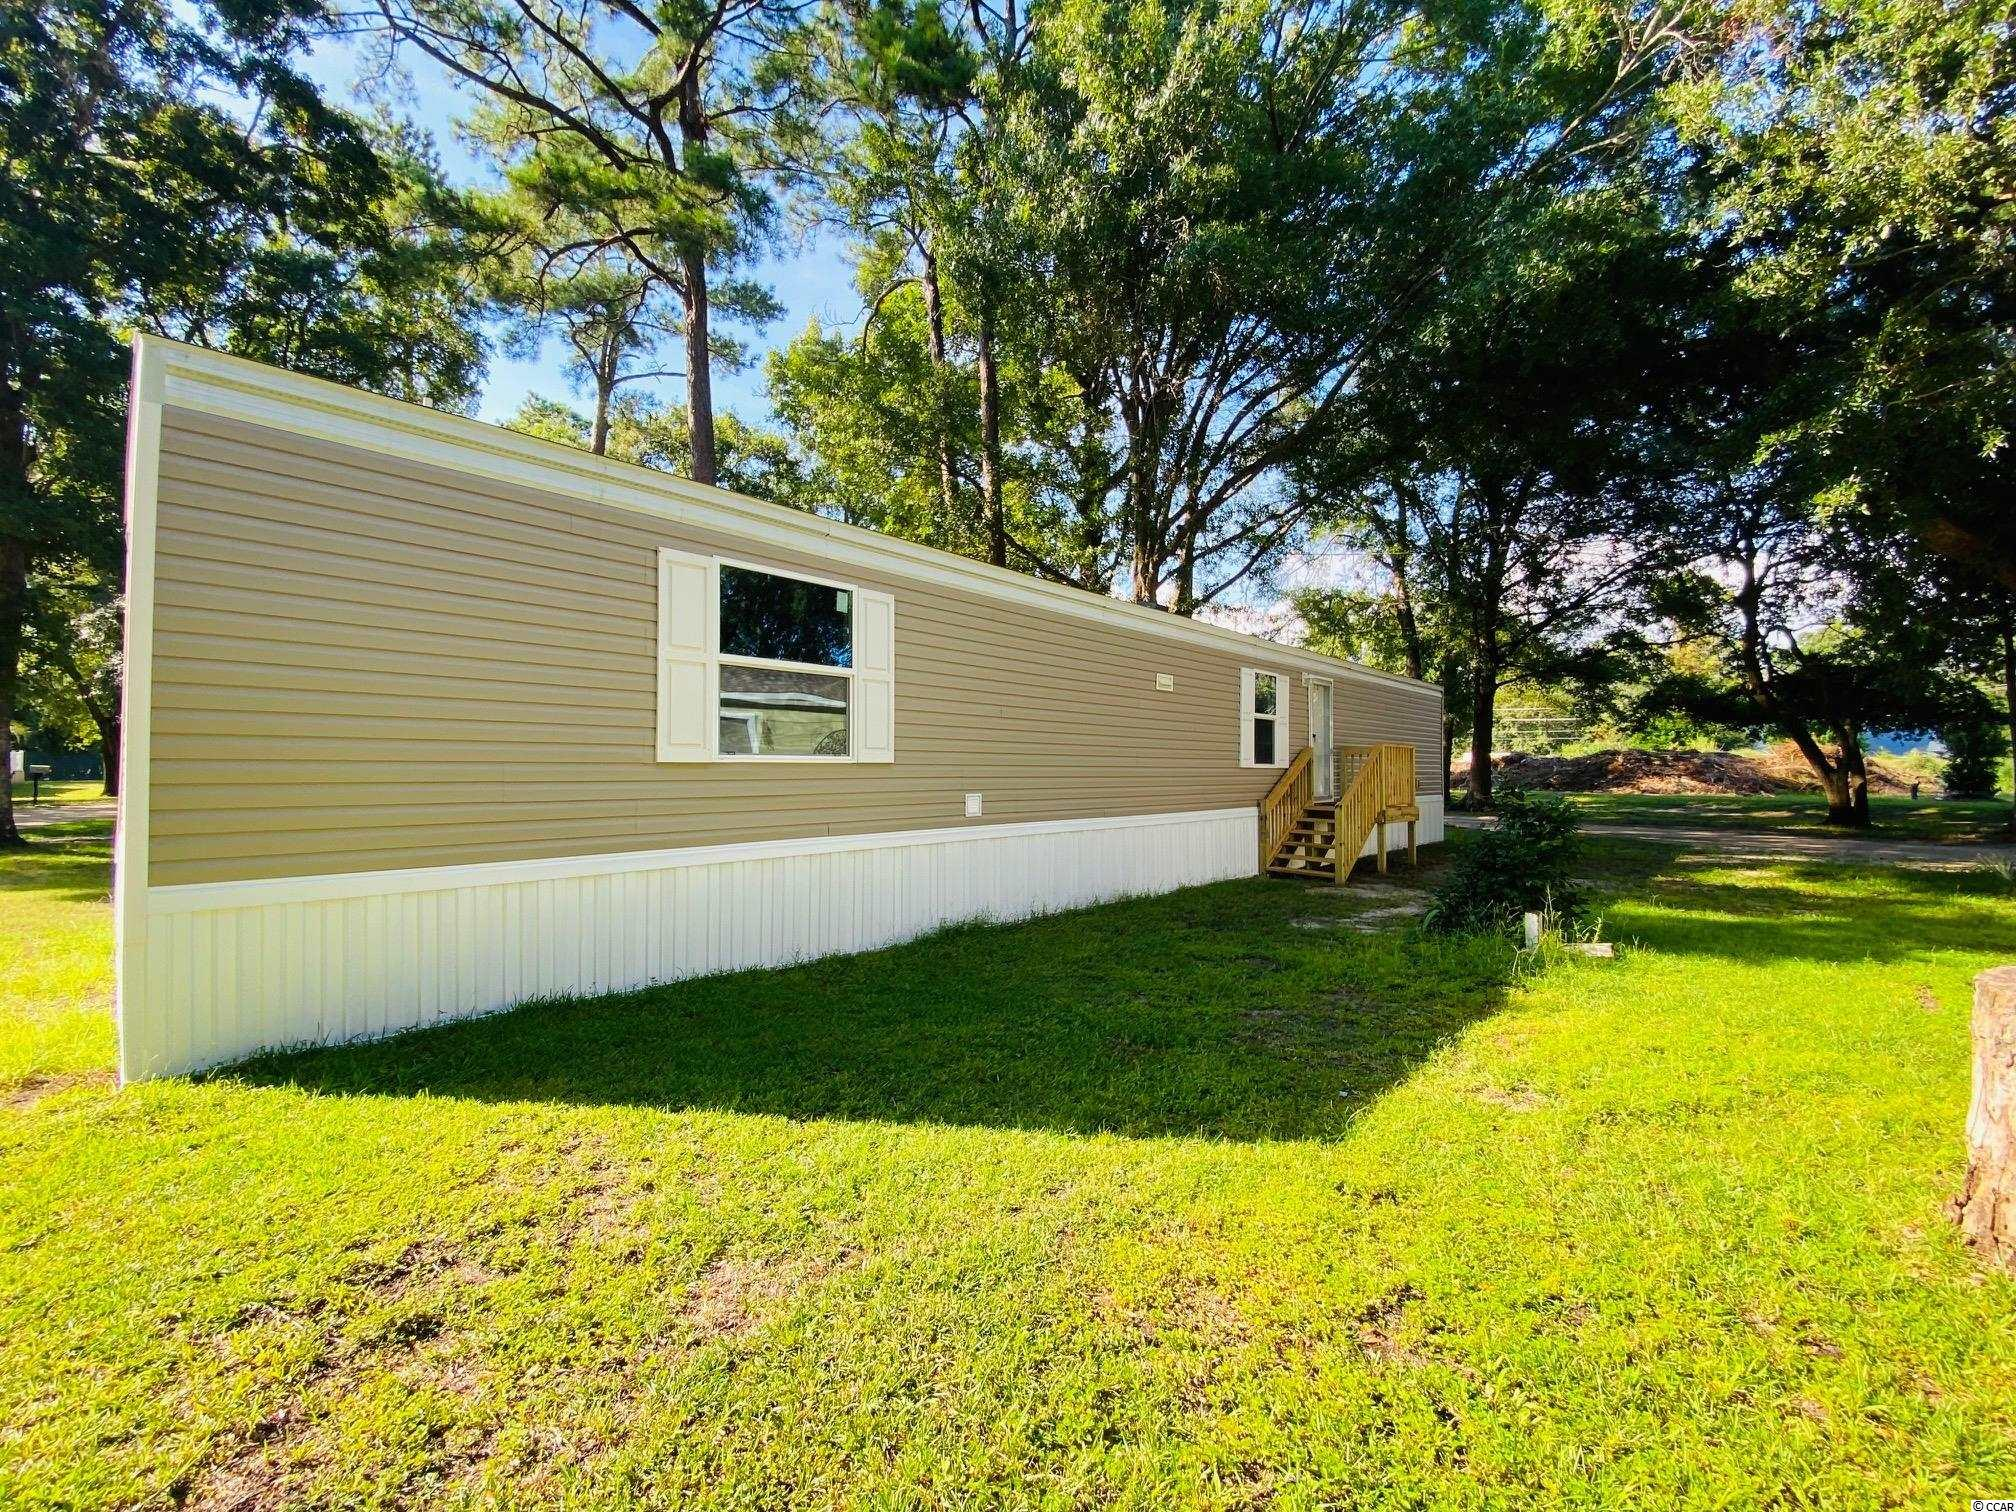 Brand New Manufactured home! 3 Br 2 Ba located in the desirable Waterford Oaks Community. Sits East of Business 17 with just a quick golf cart ride to the beach! Centrally Located to all there is to offer in the surrounding area. This quiet location is close to everything!!!A must see if you are looking for a brand new home close to the beach.